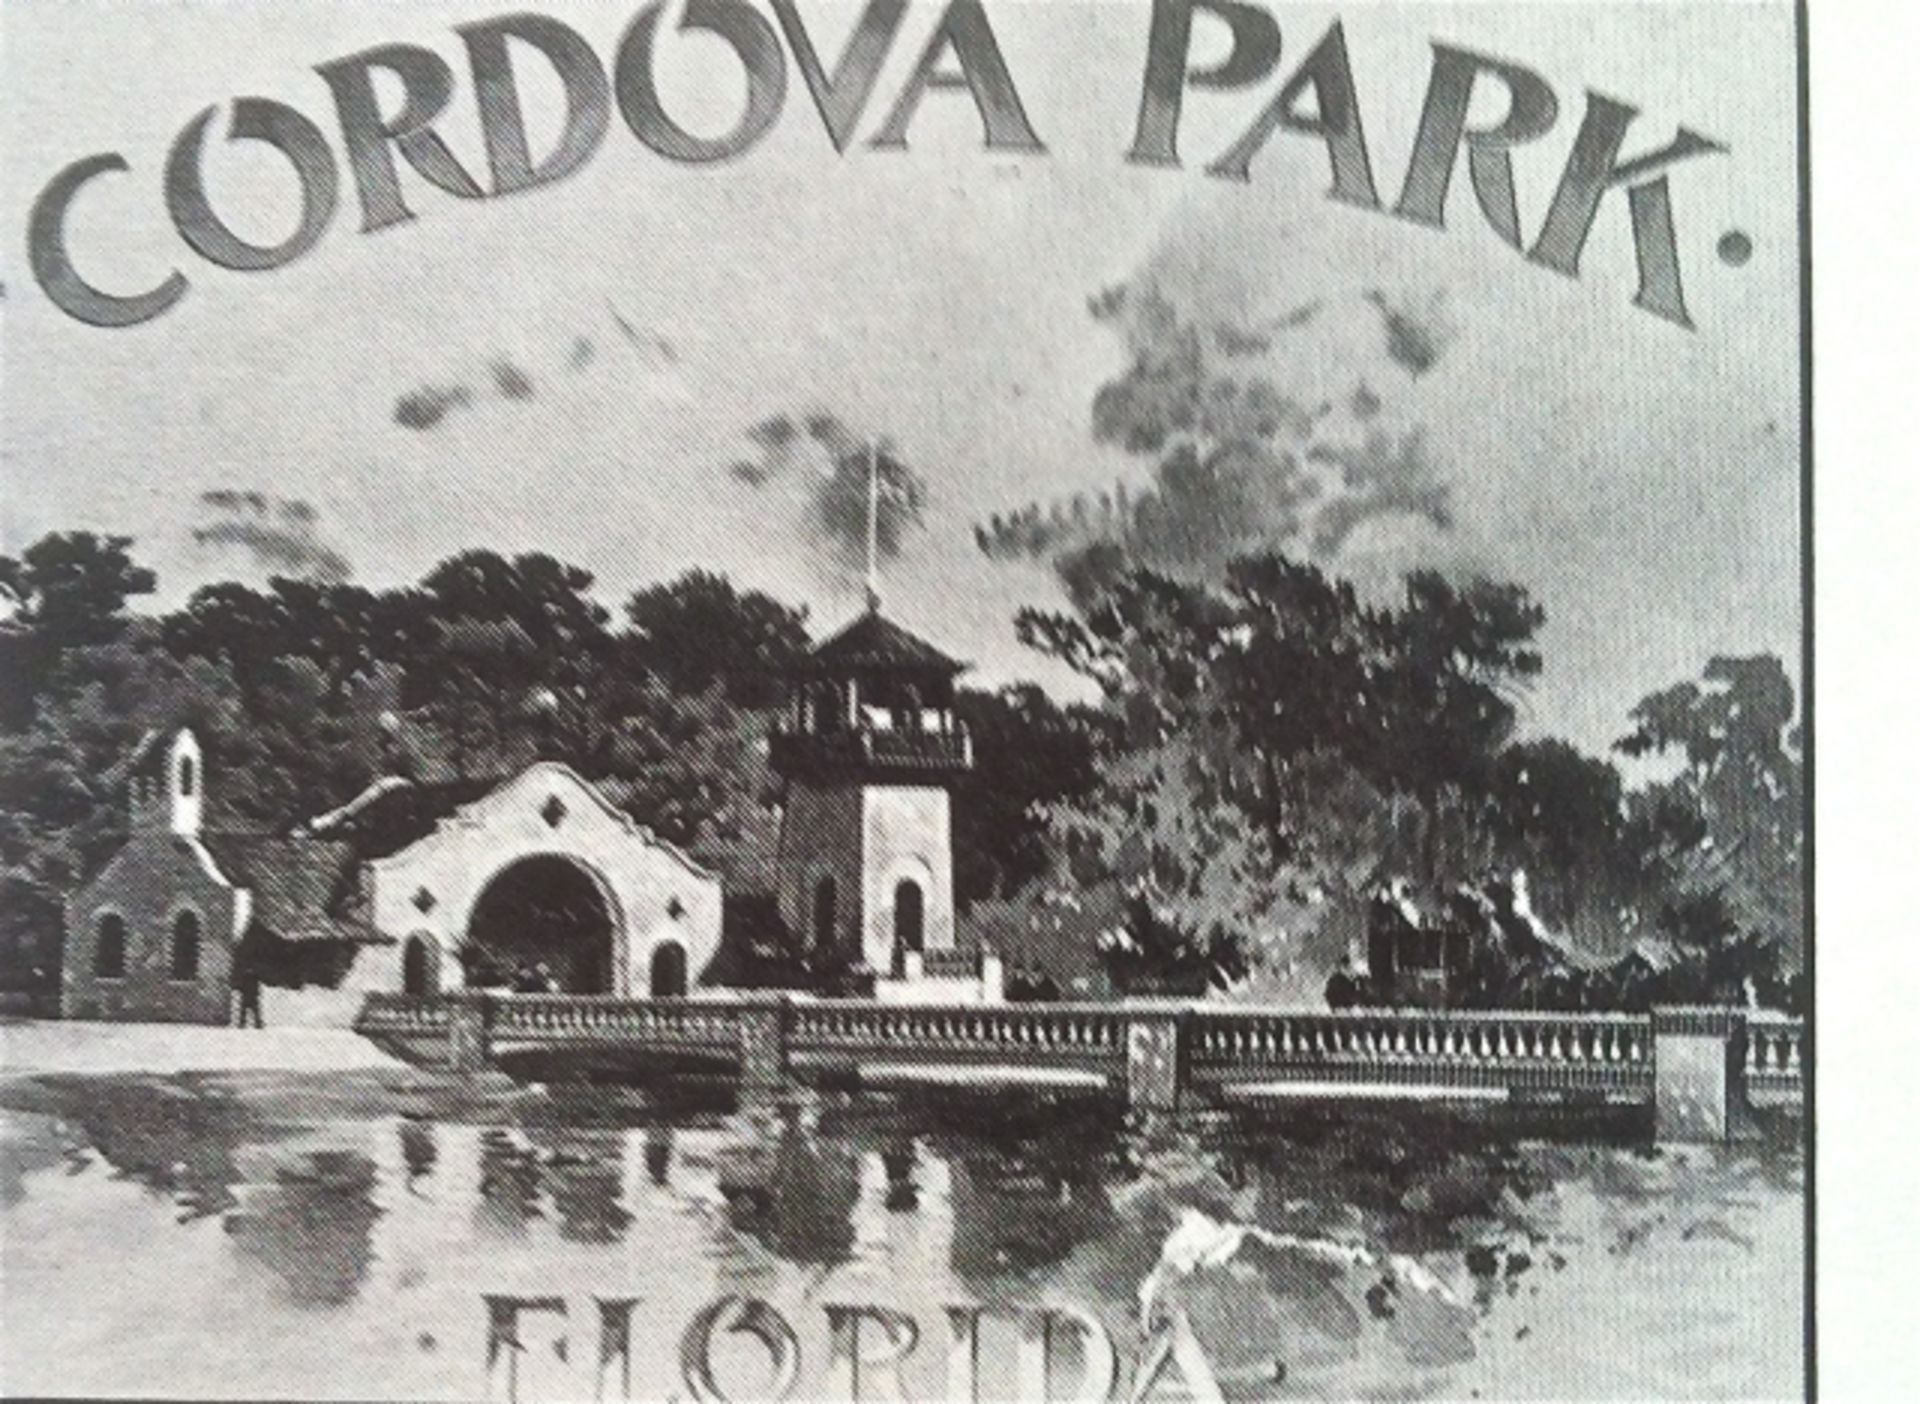 WHY IS IT CALLED CORDOVA PARK?